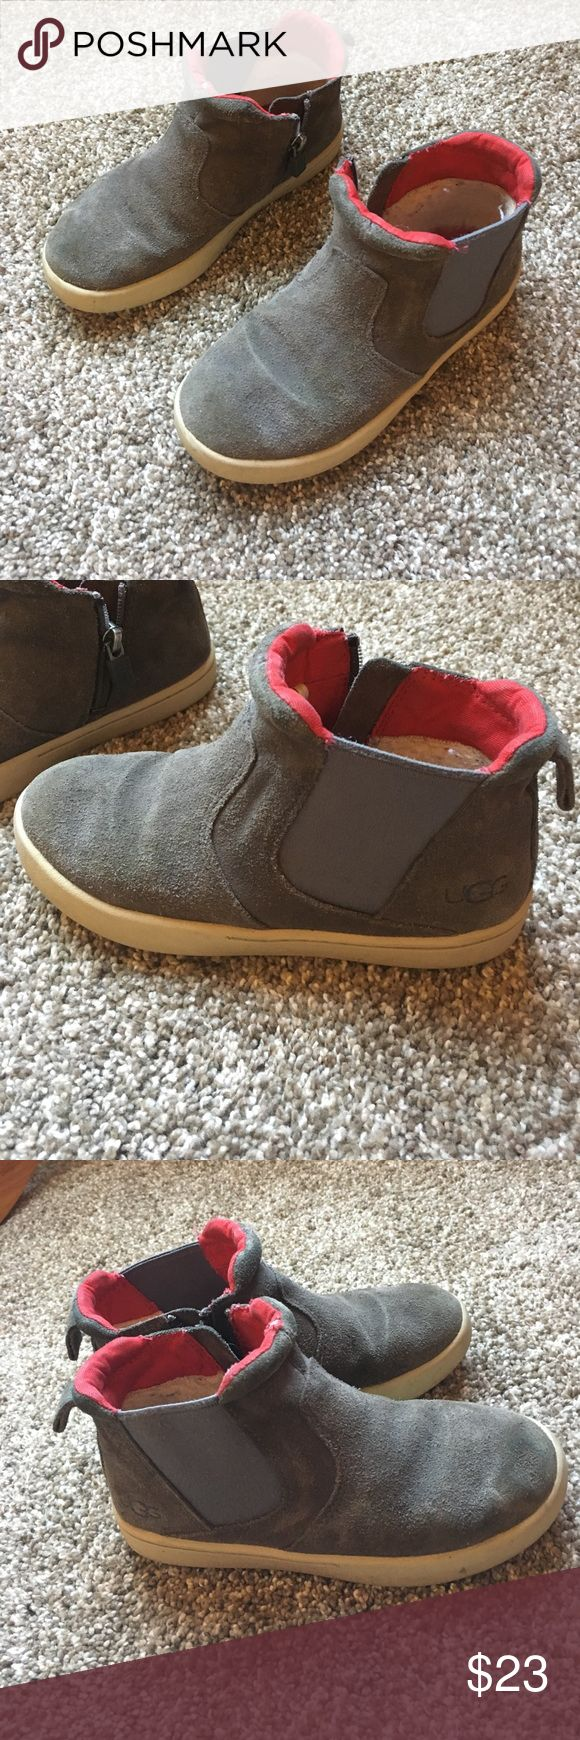 Boys uggs Boys uggs size 12 gray color zip on side so easy for kids to put on themselves bought at Nordstrom UGG Shoes Boots